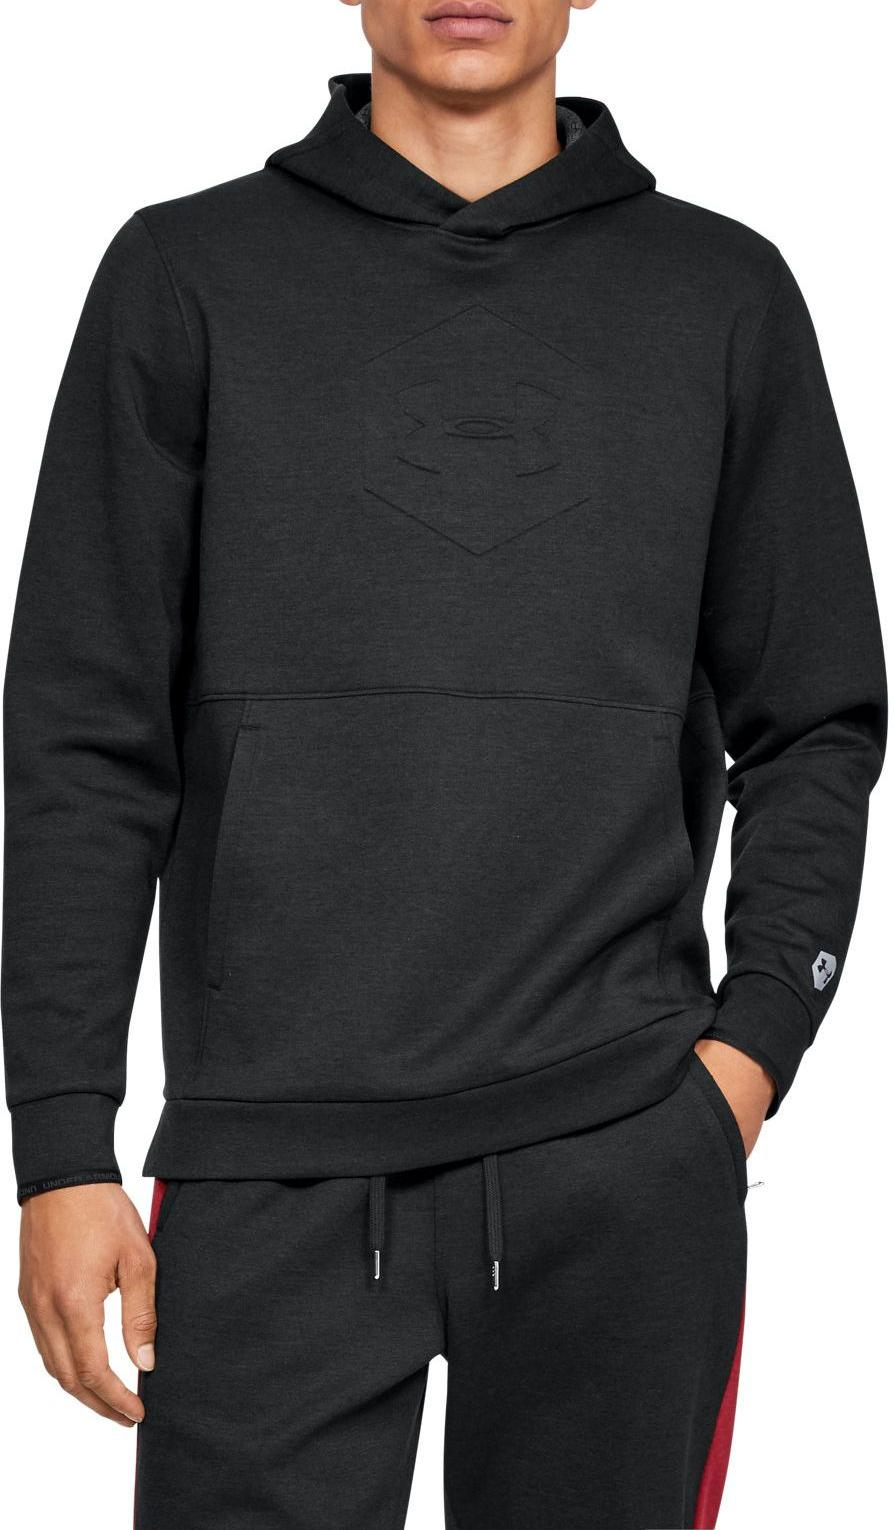 Hooded sweatshirt Under Armour Athlete Recovery Fleece Graphic Hoodie